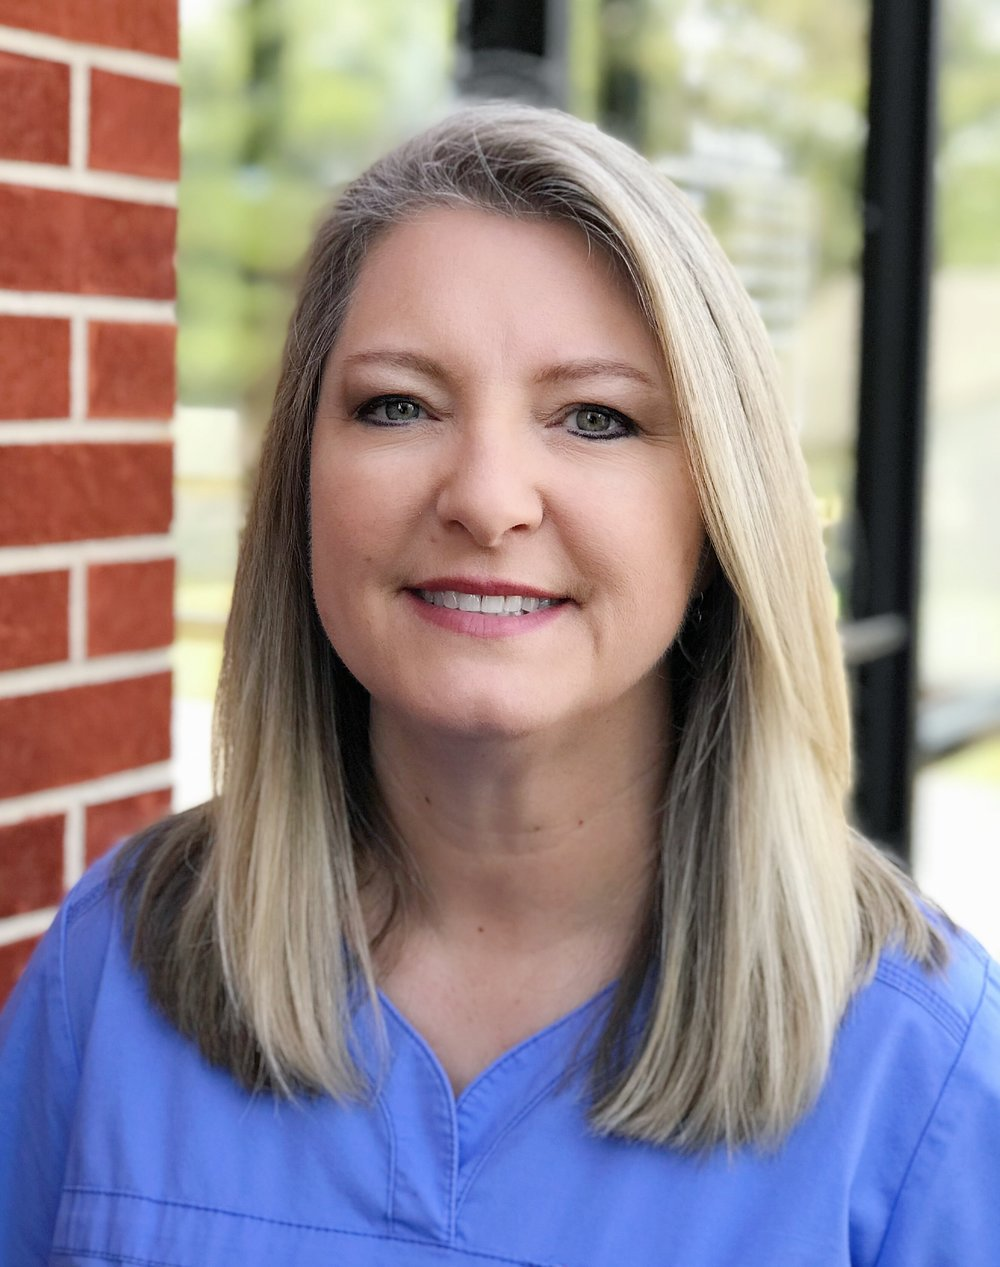 Karen Fondren, RDH - Dental Hygienist